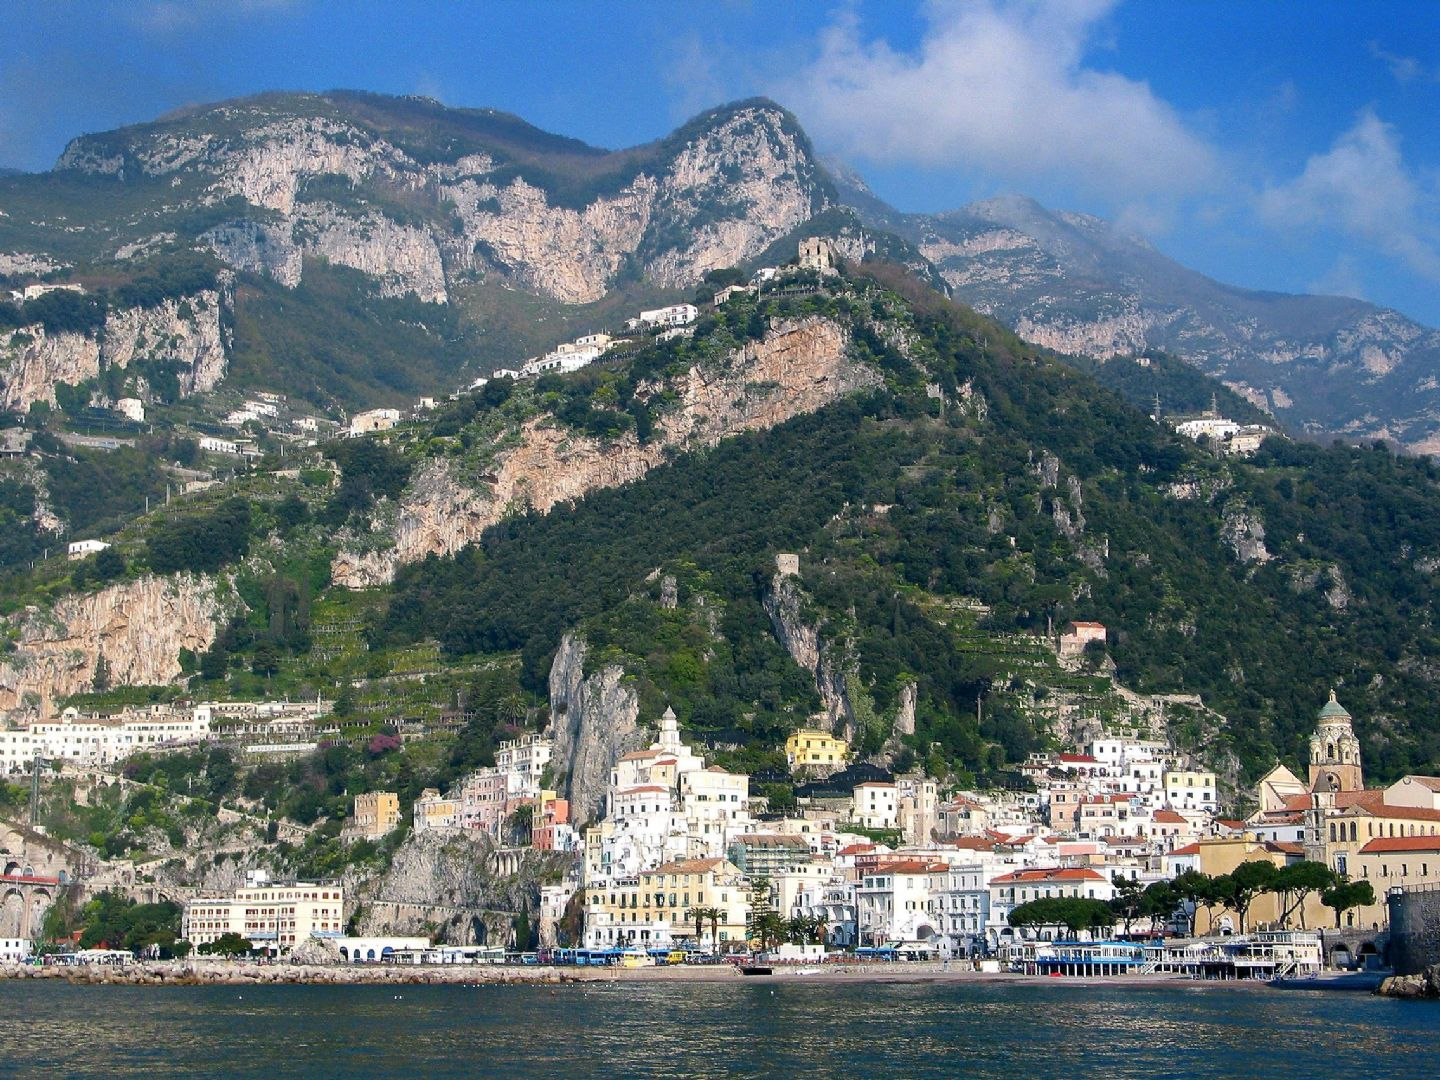 Amalfi05.jpg - Italy - Cilento and The Amalfi Coast - Guided Leisure Cycling Holiday - Italia Leisure and Family Cycling